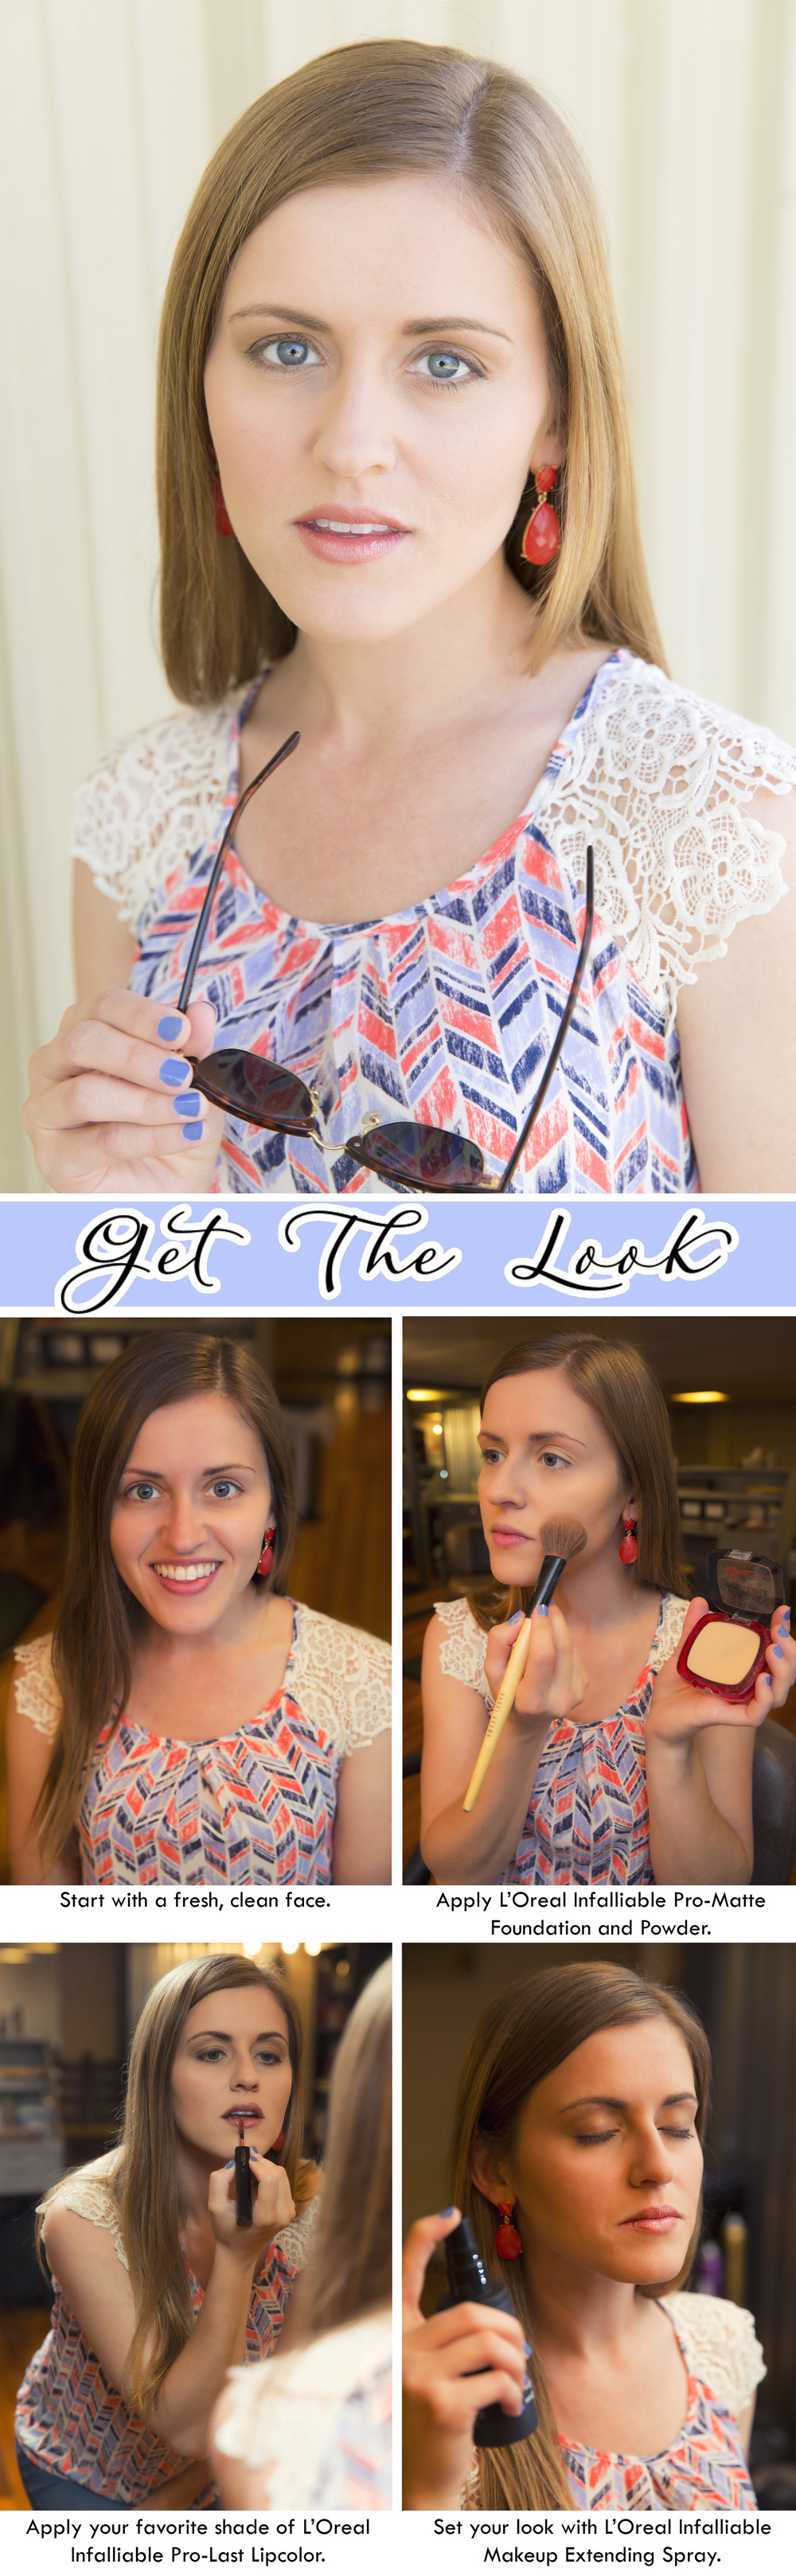 5DB_6038 Get The Look Collage - Katherine sm.jpg